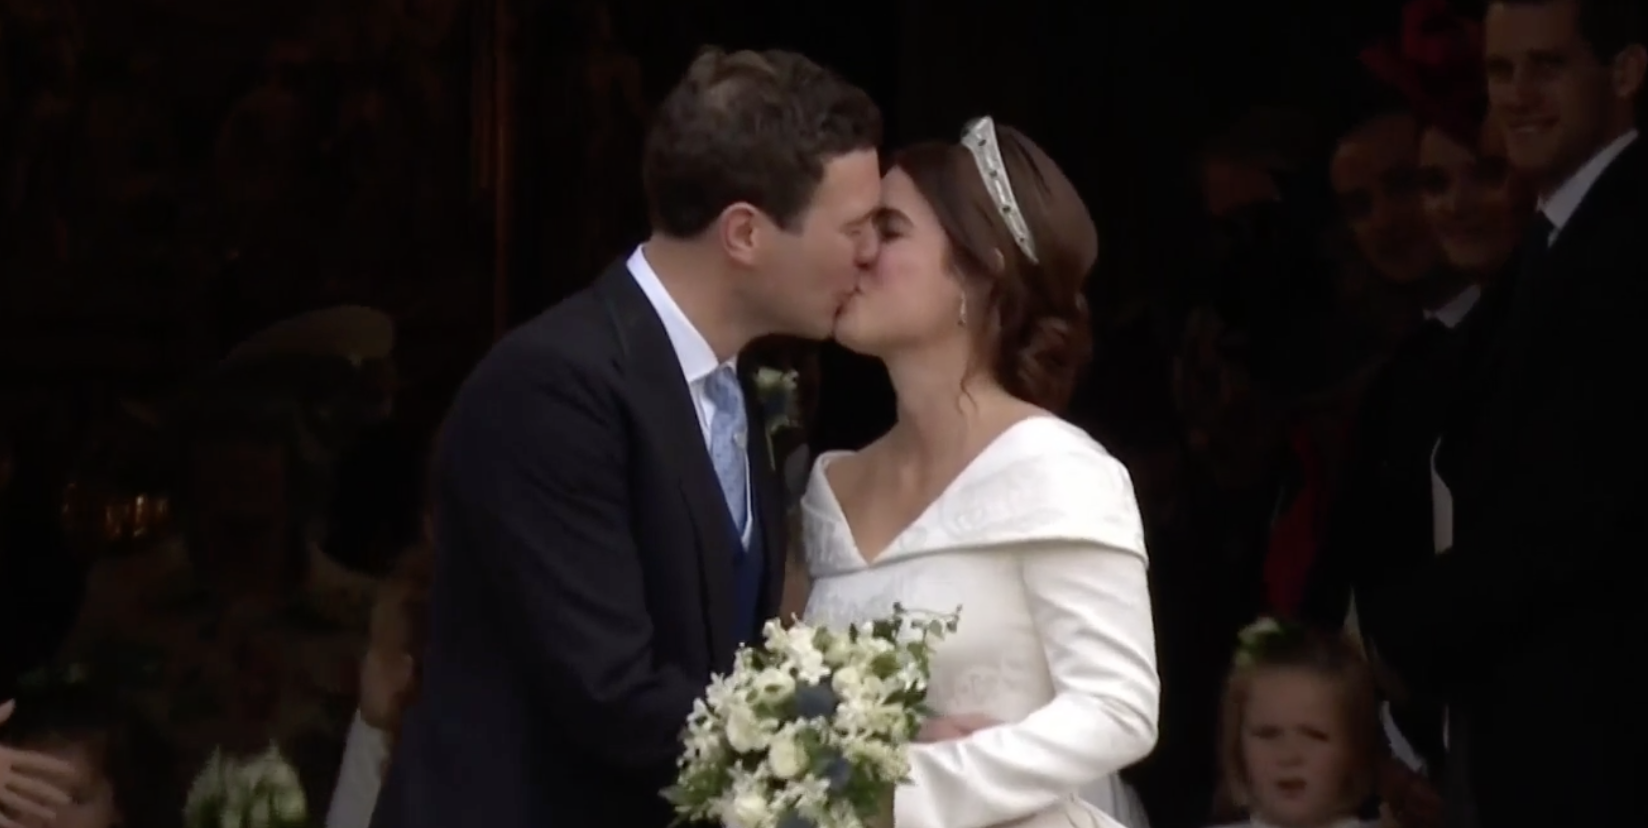 Princess Eugenie and Jack Brooksbank Share Their First Kiss at Their Royal Wedding